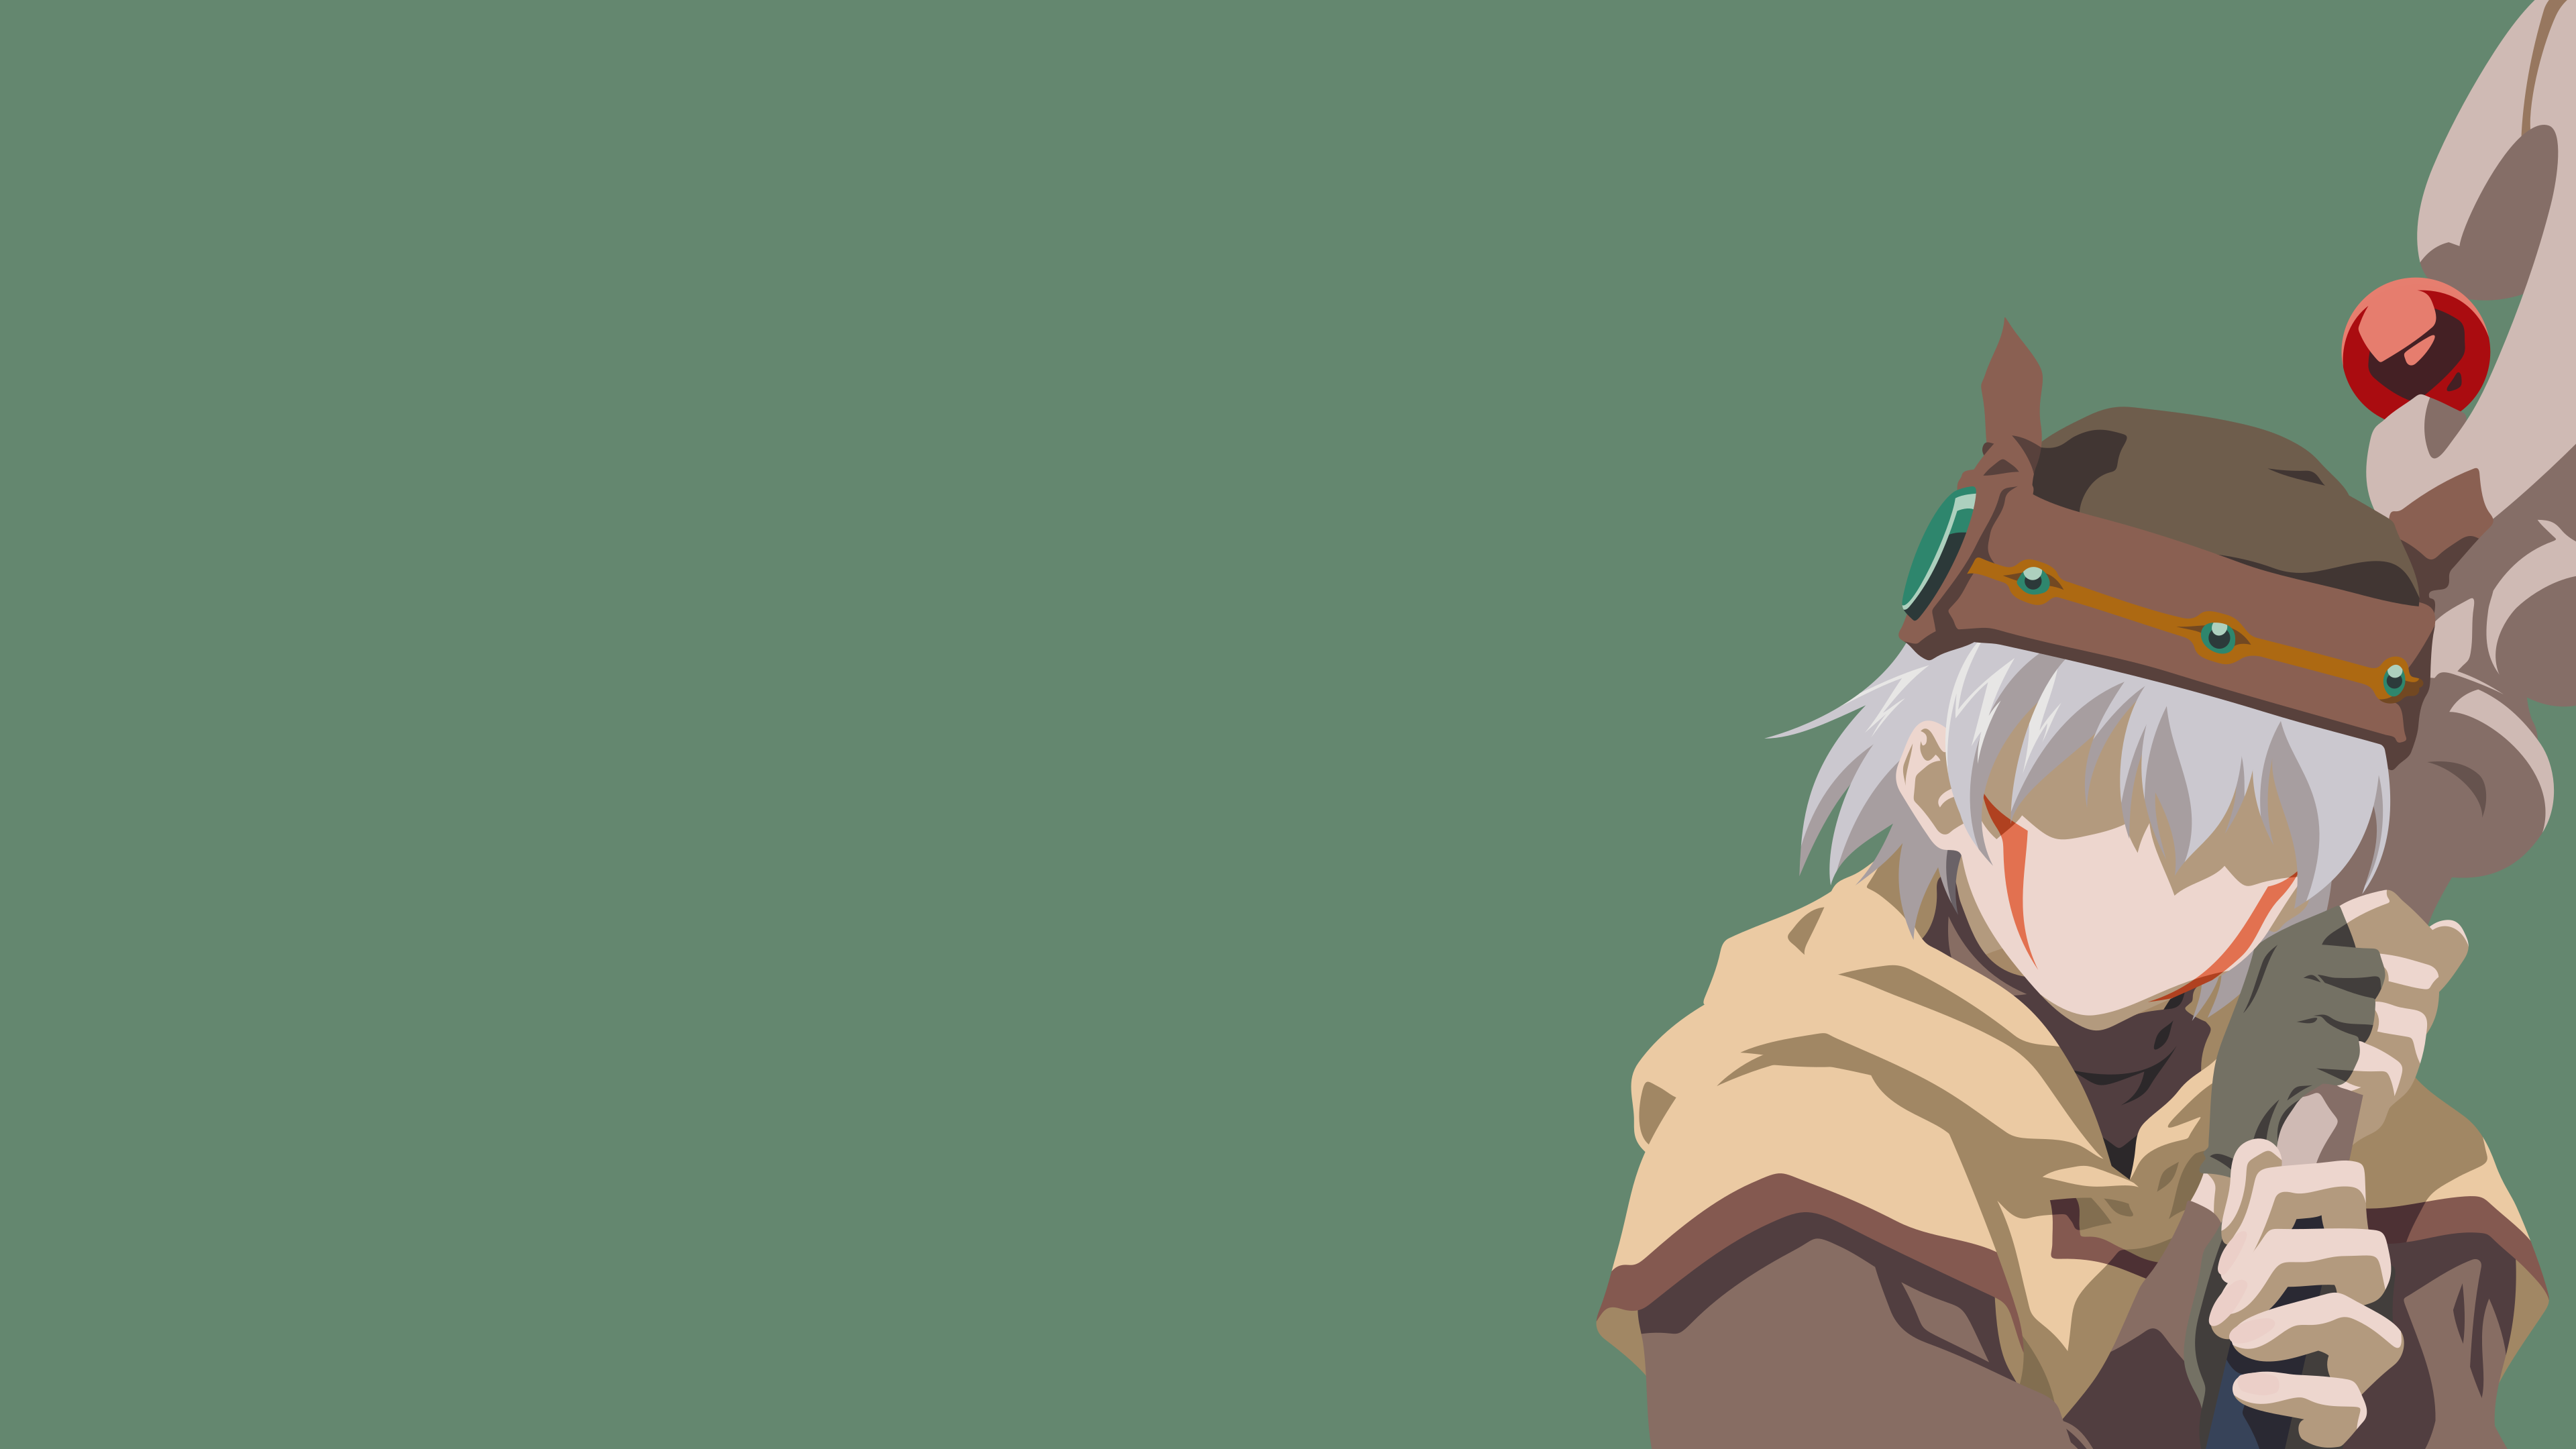 Tsukasa Hack Sign Wallpaper By Insanitykitsune On Deviantart